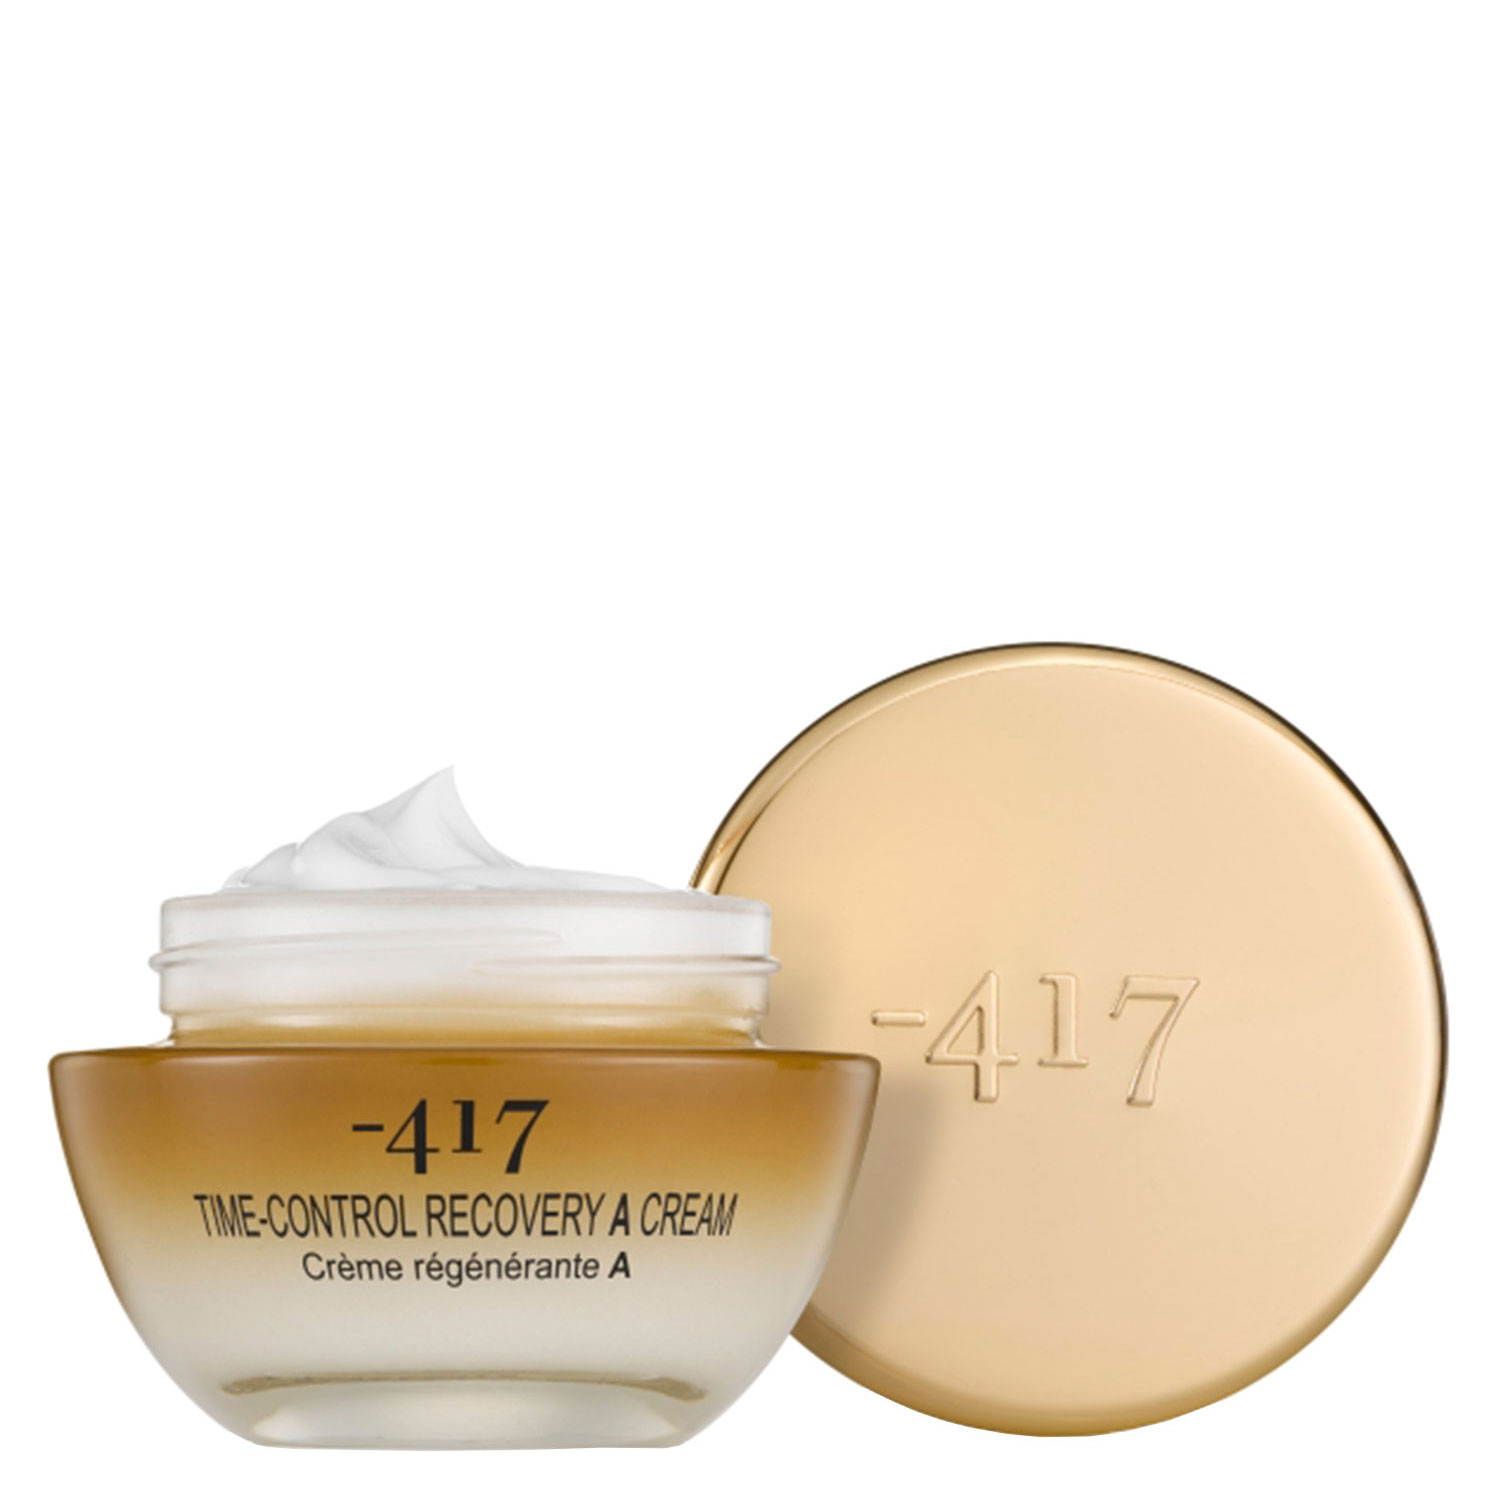 Minus 417 - Time Control Recovery A Cream - 50ml